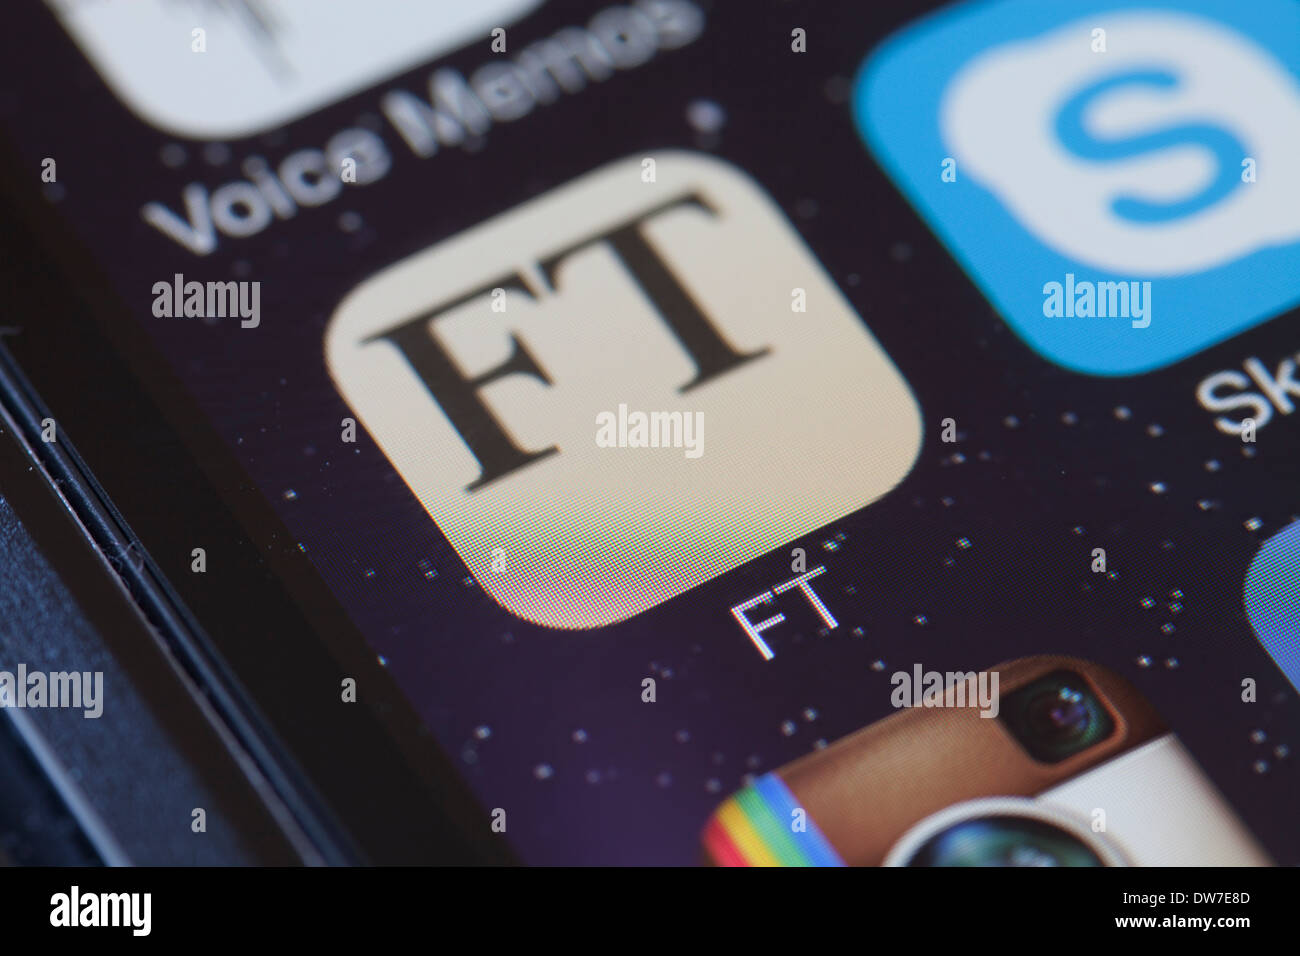 Financial Times-app-Symbol auf dem Handy. Stockbild